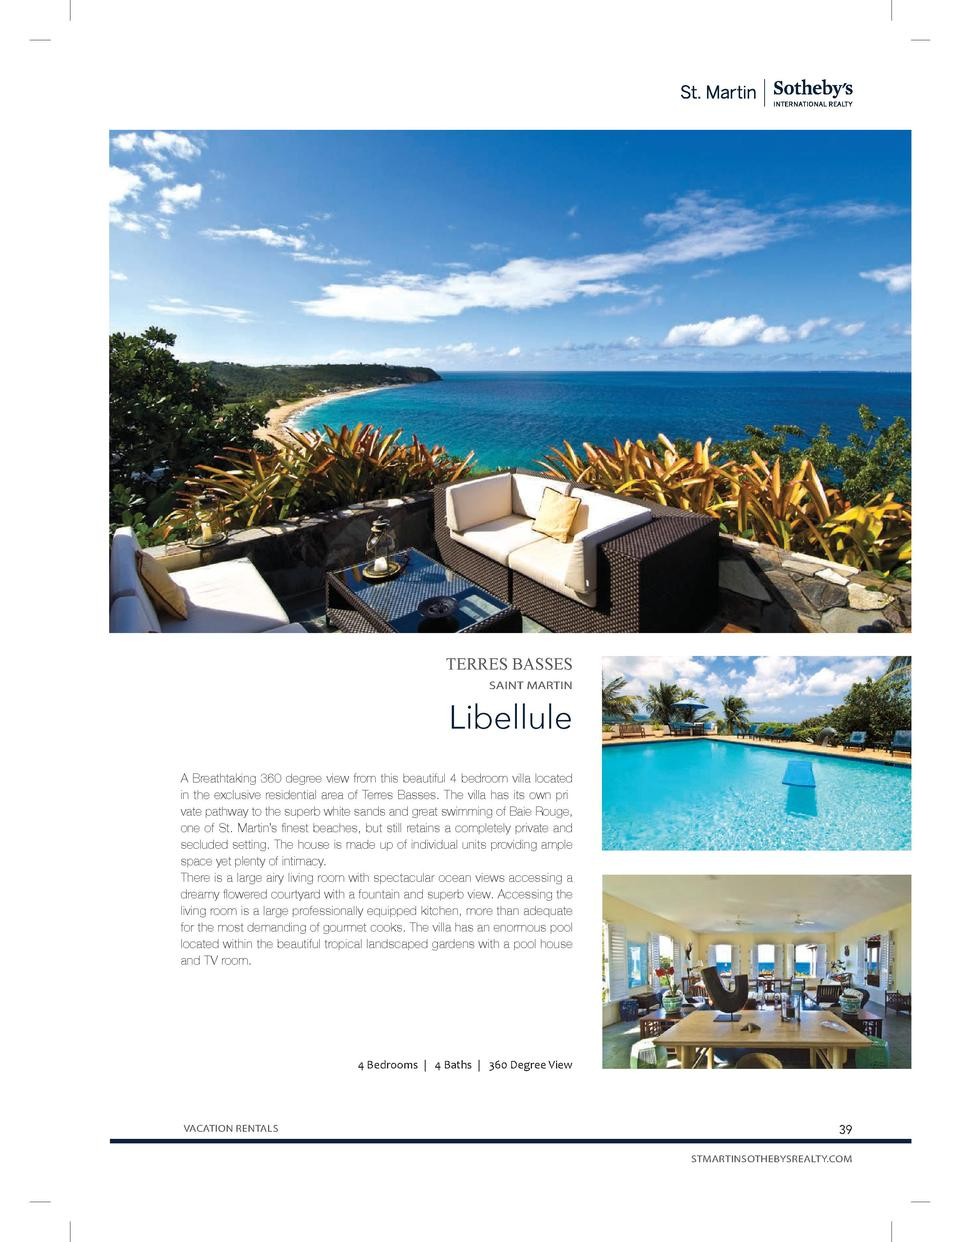 TERRES BASSES SAINT MARTIN  Libellule A Breathtaking 360 degree view from this beautiful 4 bedroom villa located in the ex...